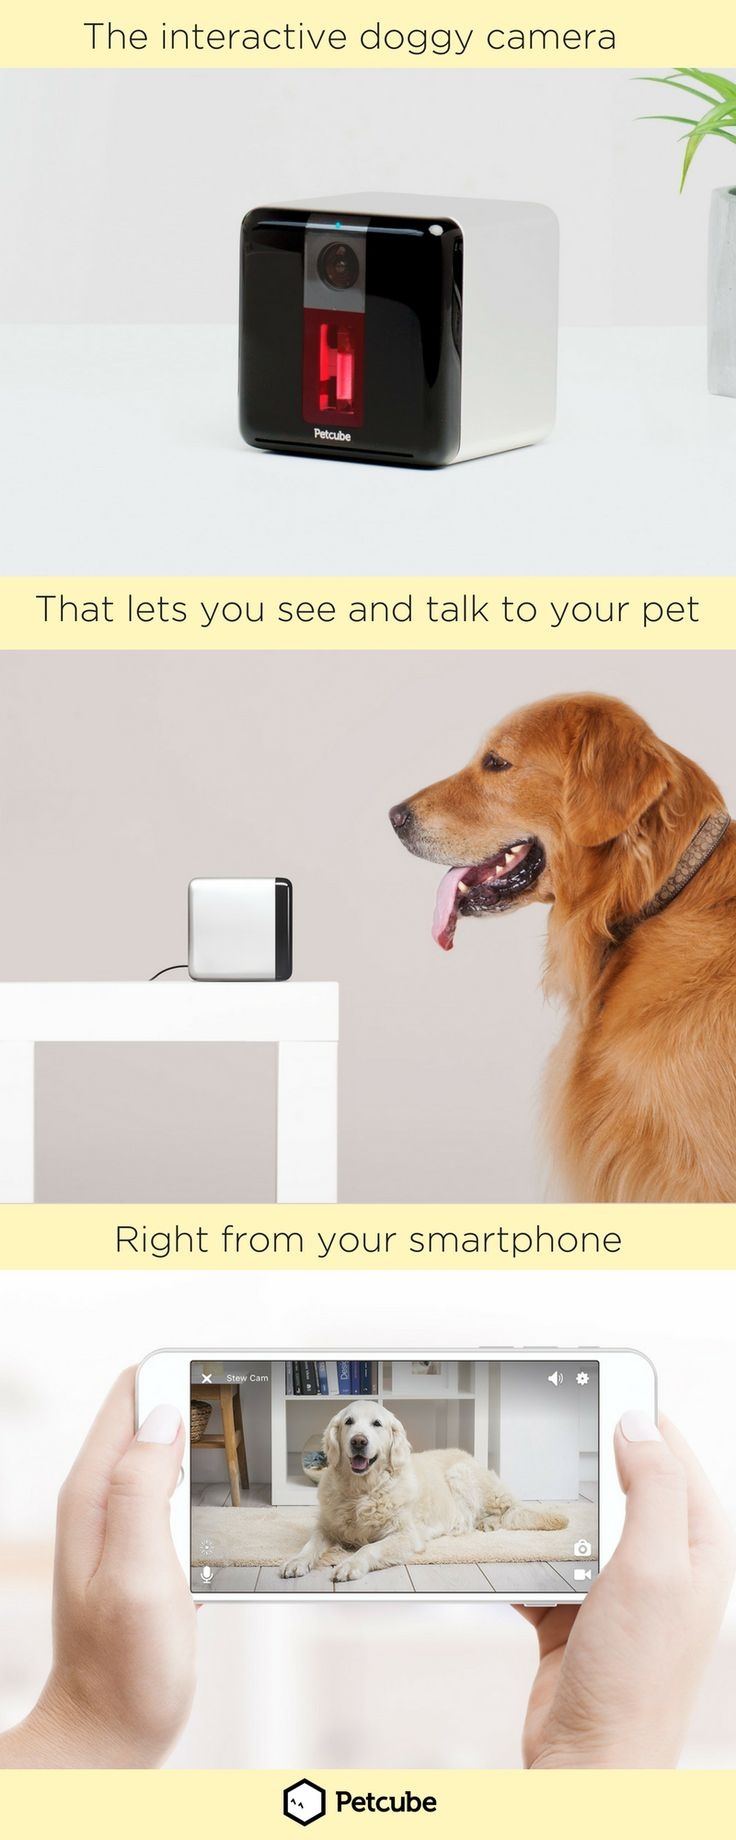 Your dog misses you when you leave. Stop separation anxiety and destructive puppy behavior and stay more connected with your pet with the Petcube Play doggy camera. Find out how this pet cam lets you watch, talk to, and even play with your pet all from your smartphone.